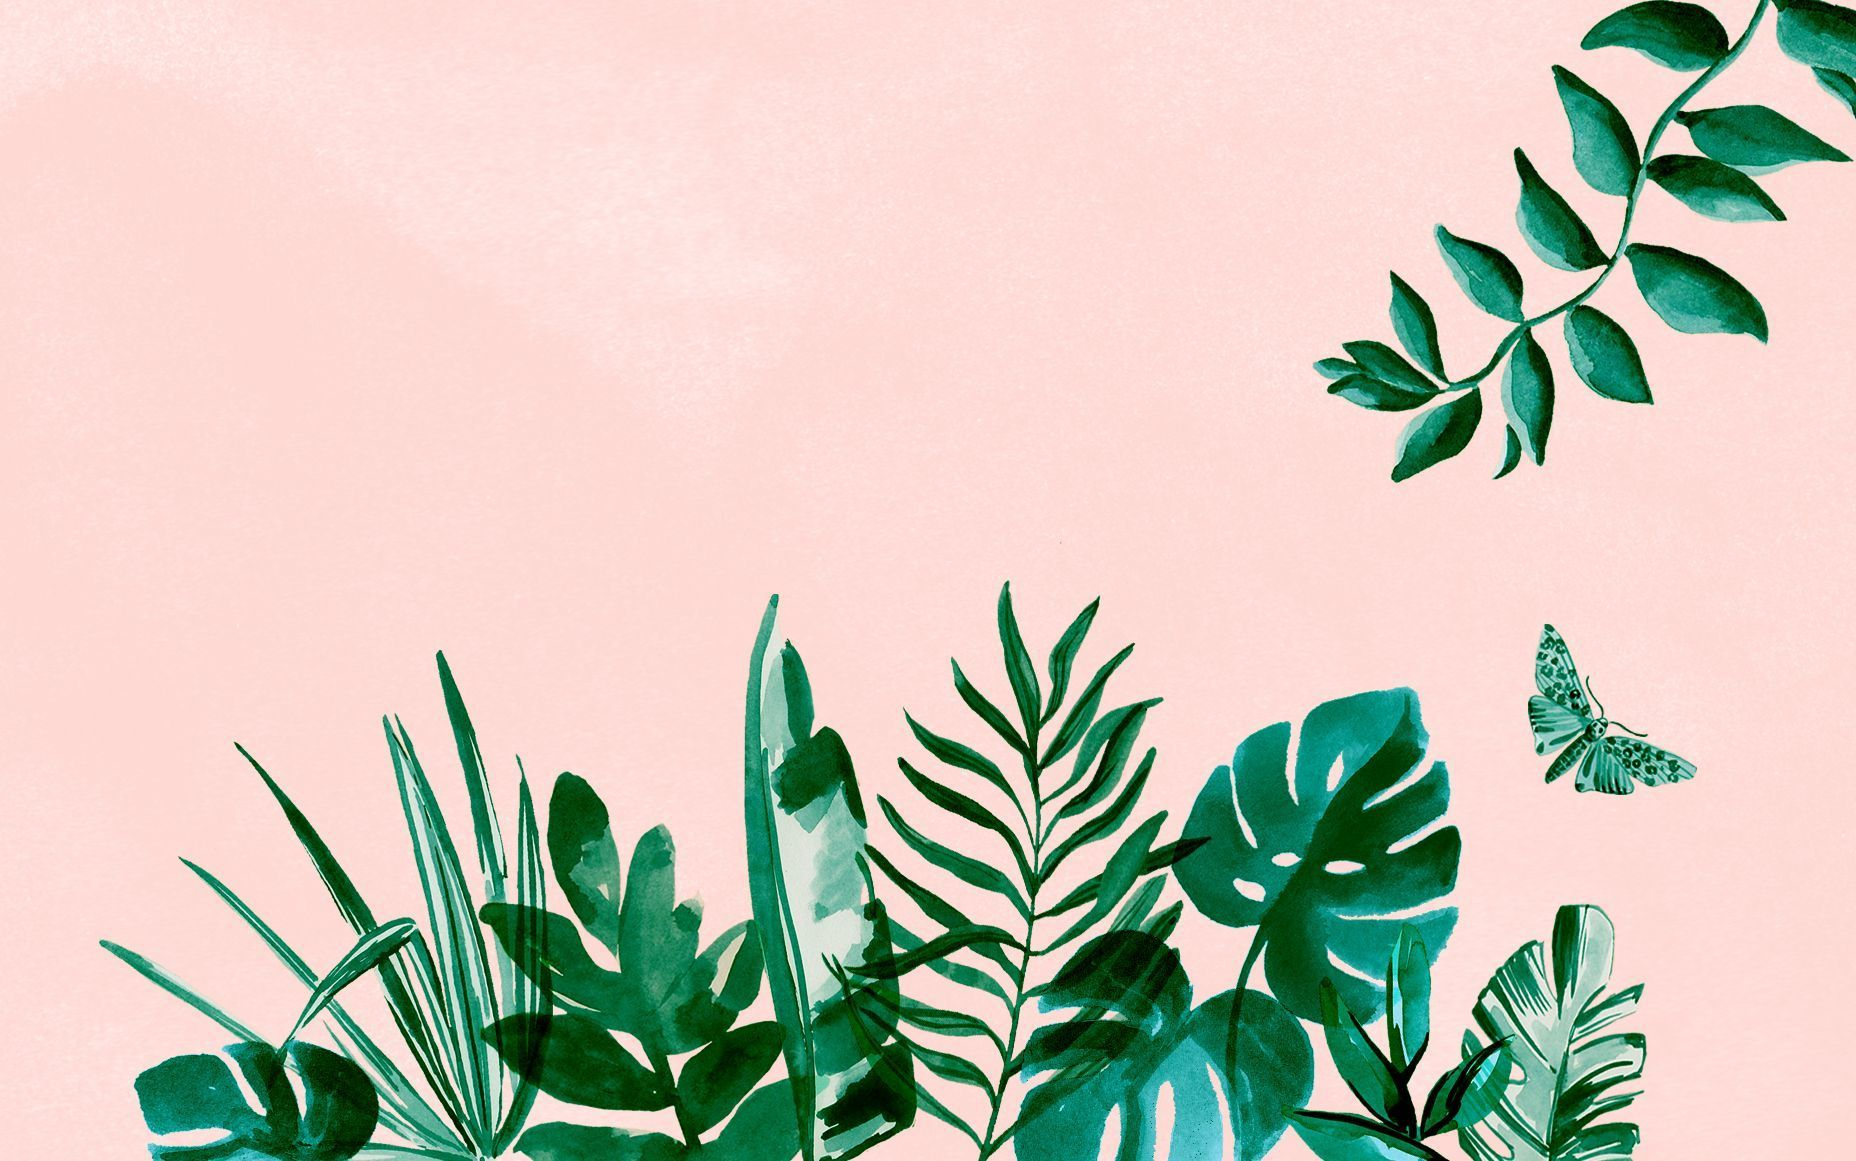 Plant Aesthetic Laptop Wallpapers On Wallpaperdog